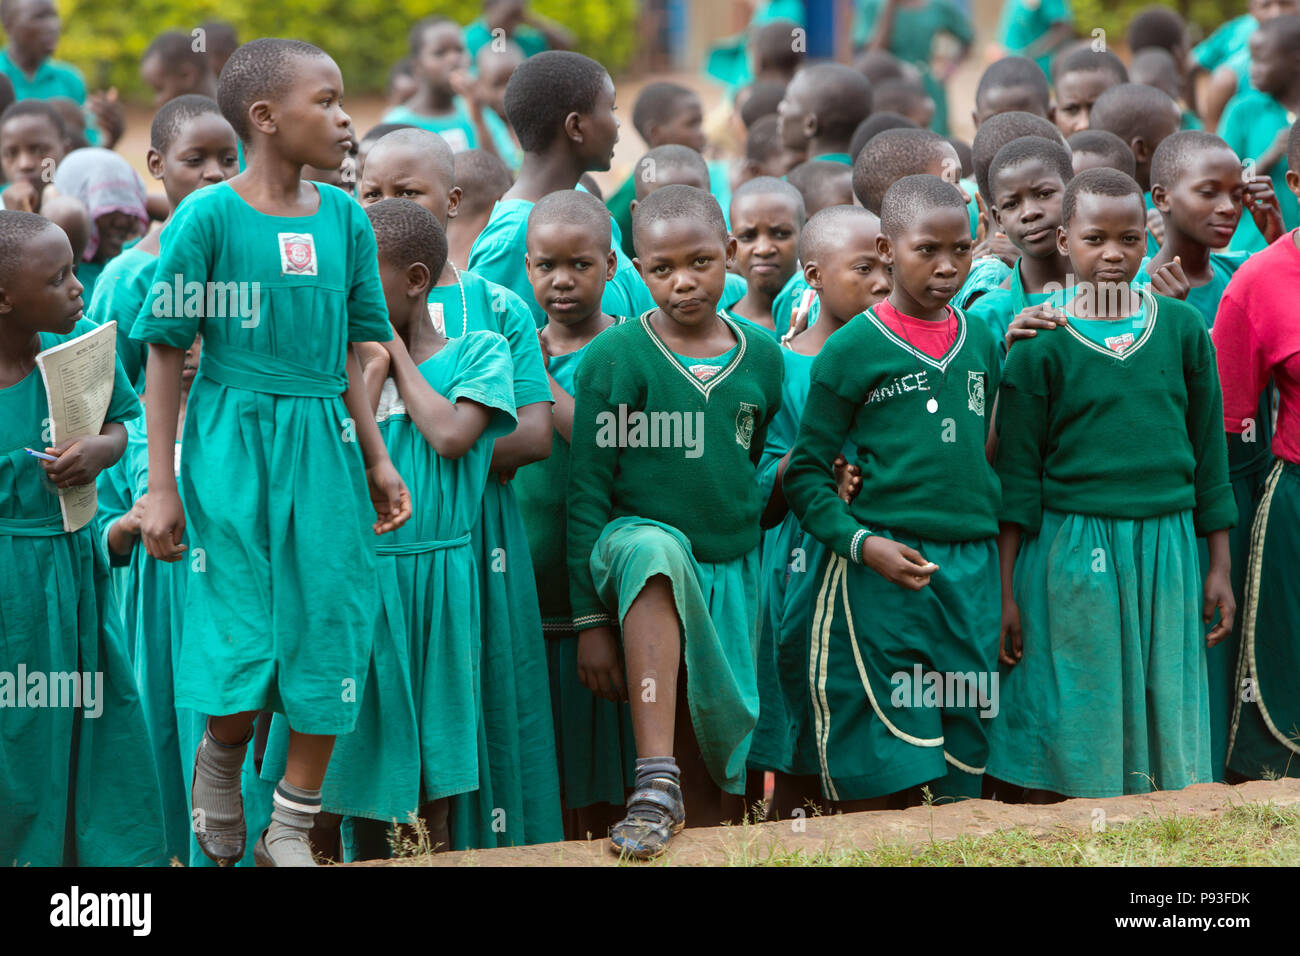 Bombo, Uganda - School appeal in the schoolyard of St. Joseph's Bombo mixed primary school. - Stock Image